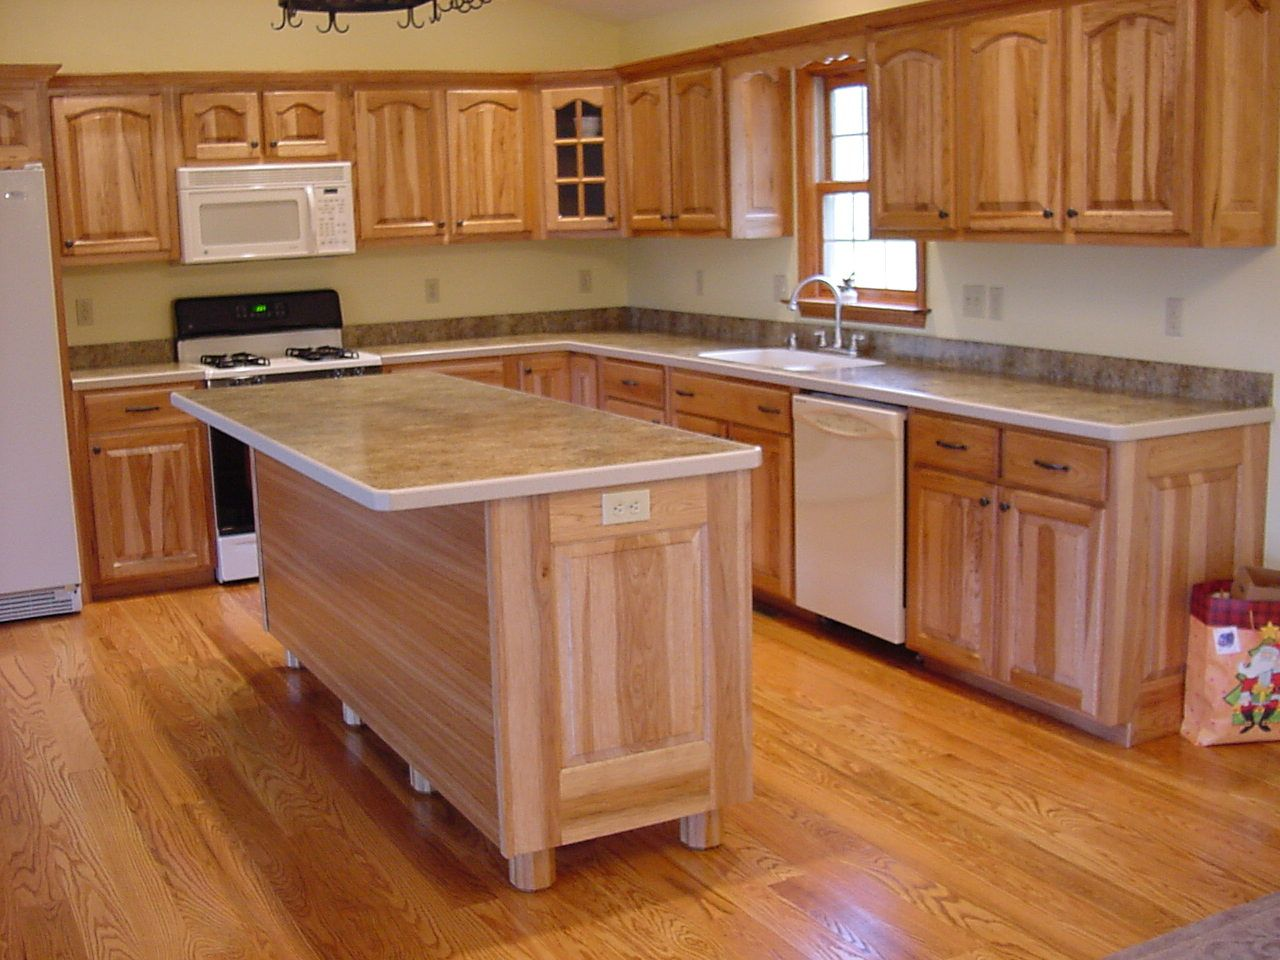 laminate kitchen countertops house construction in india ideas